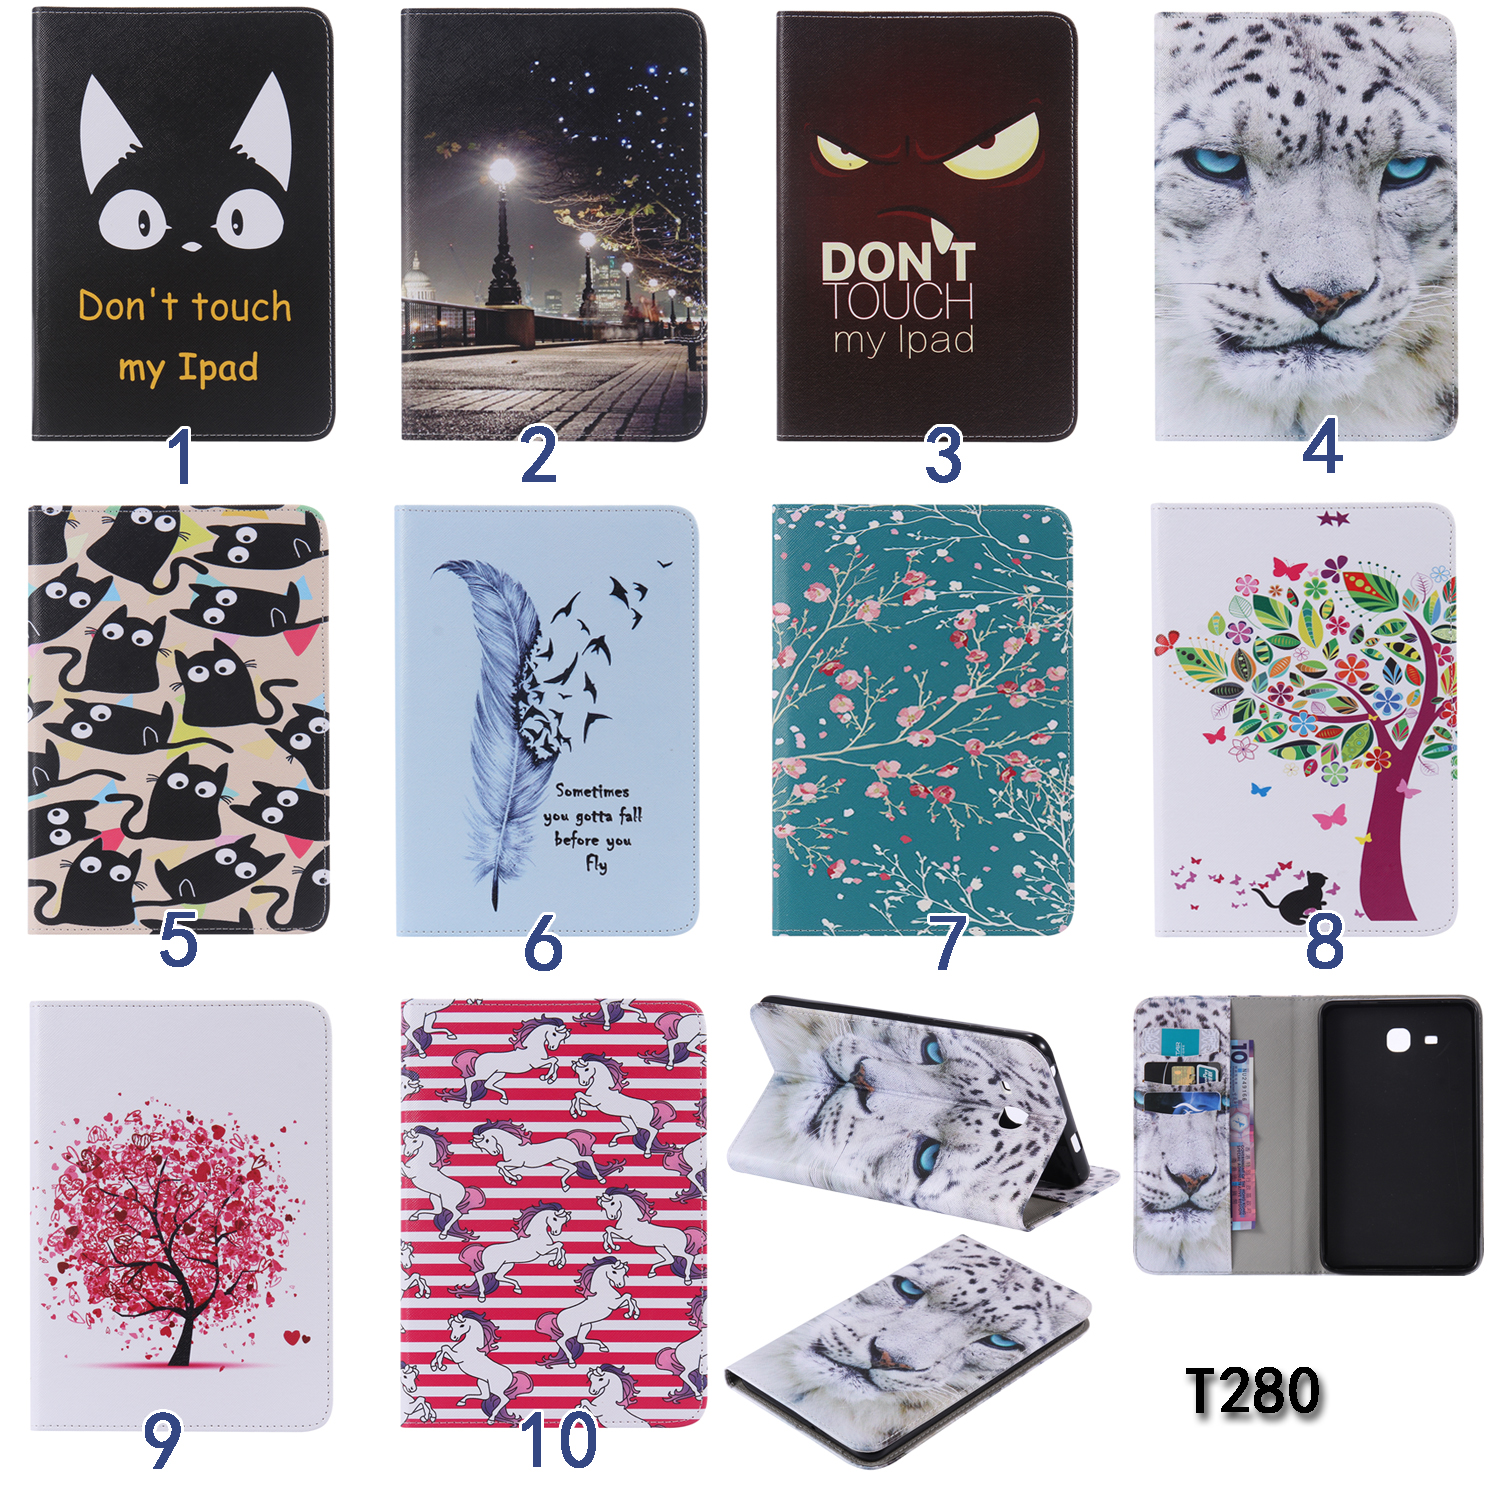 For Samsung Galaxy Tab A 7.0 SM-T280 SM-T285 cartoon pu Leather cover case for Samsung Galaxy Tab A 7.0 T280 T285 Tablet cases аксессуар чехол it baggage for samsung galaxy tab a 7 sm t285 sm t280 иск кожа white itssgta70 0